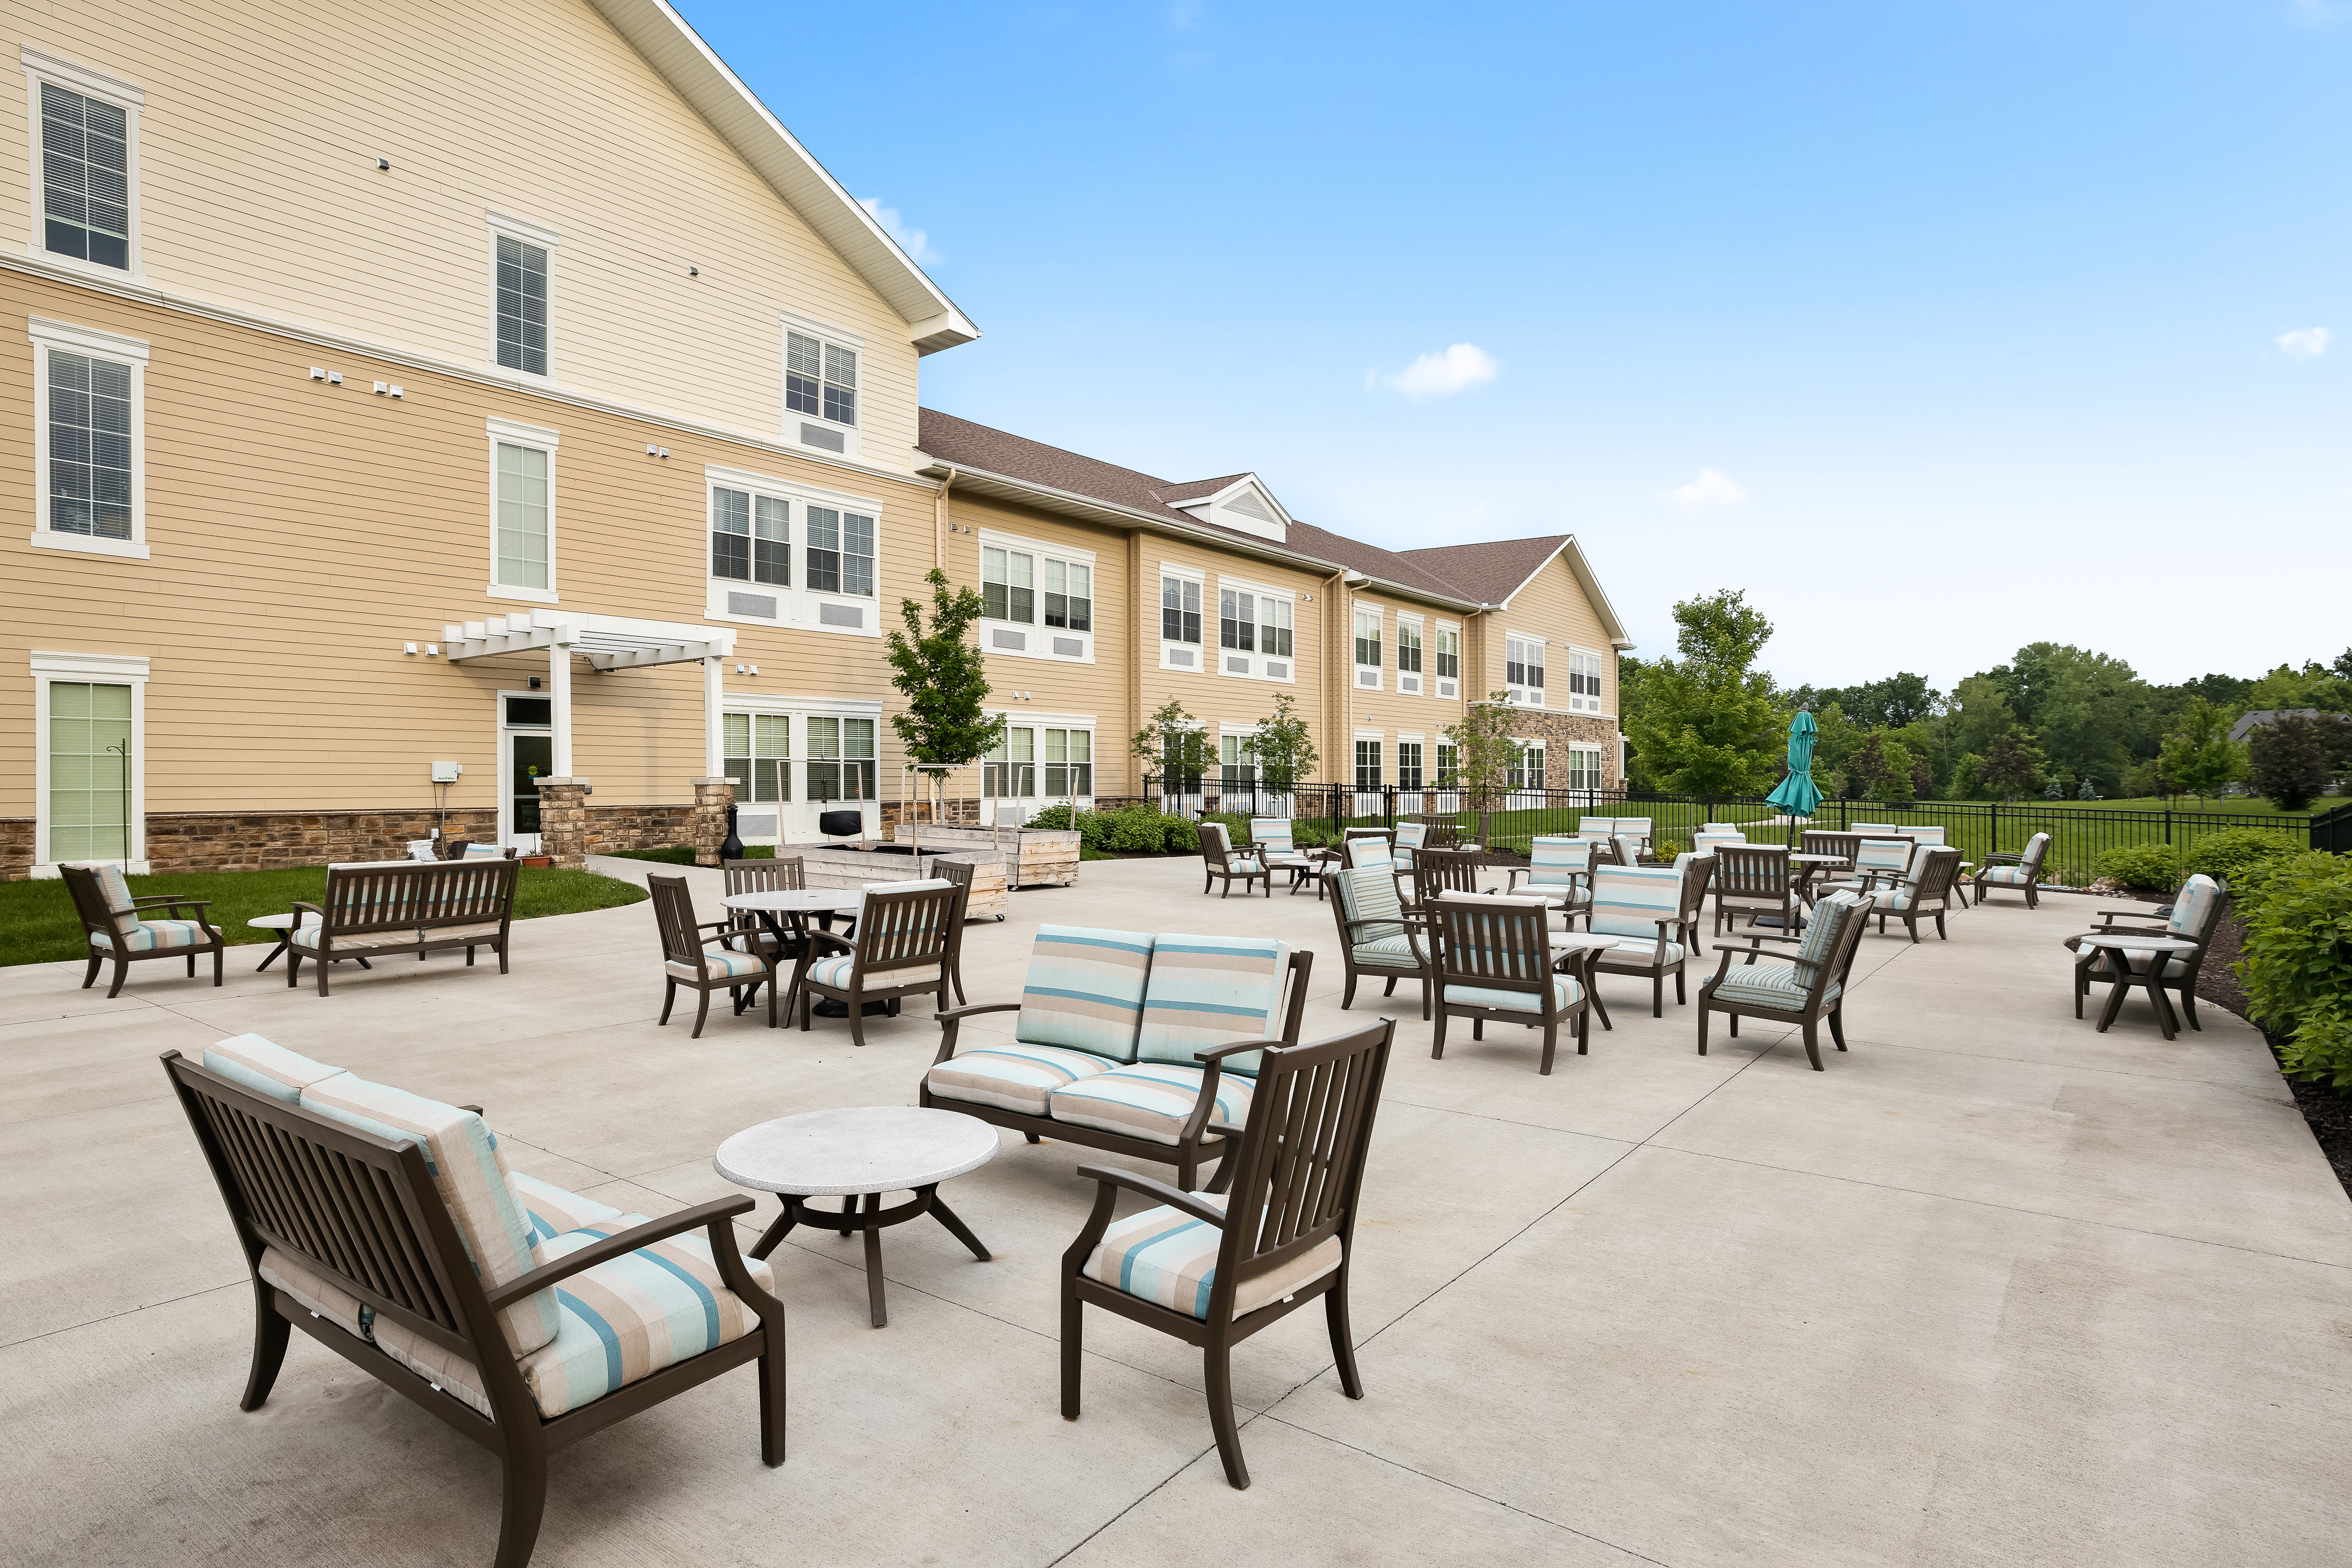 A sunny patio at Anthology of Overland Park in Overland Park, Kansas